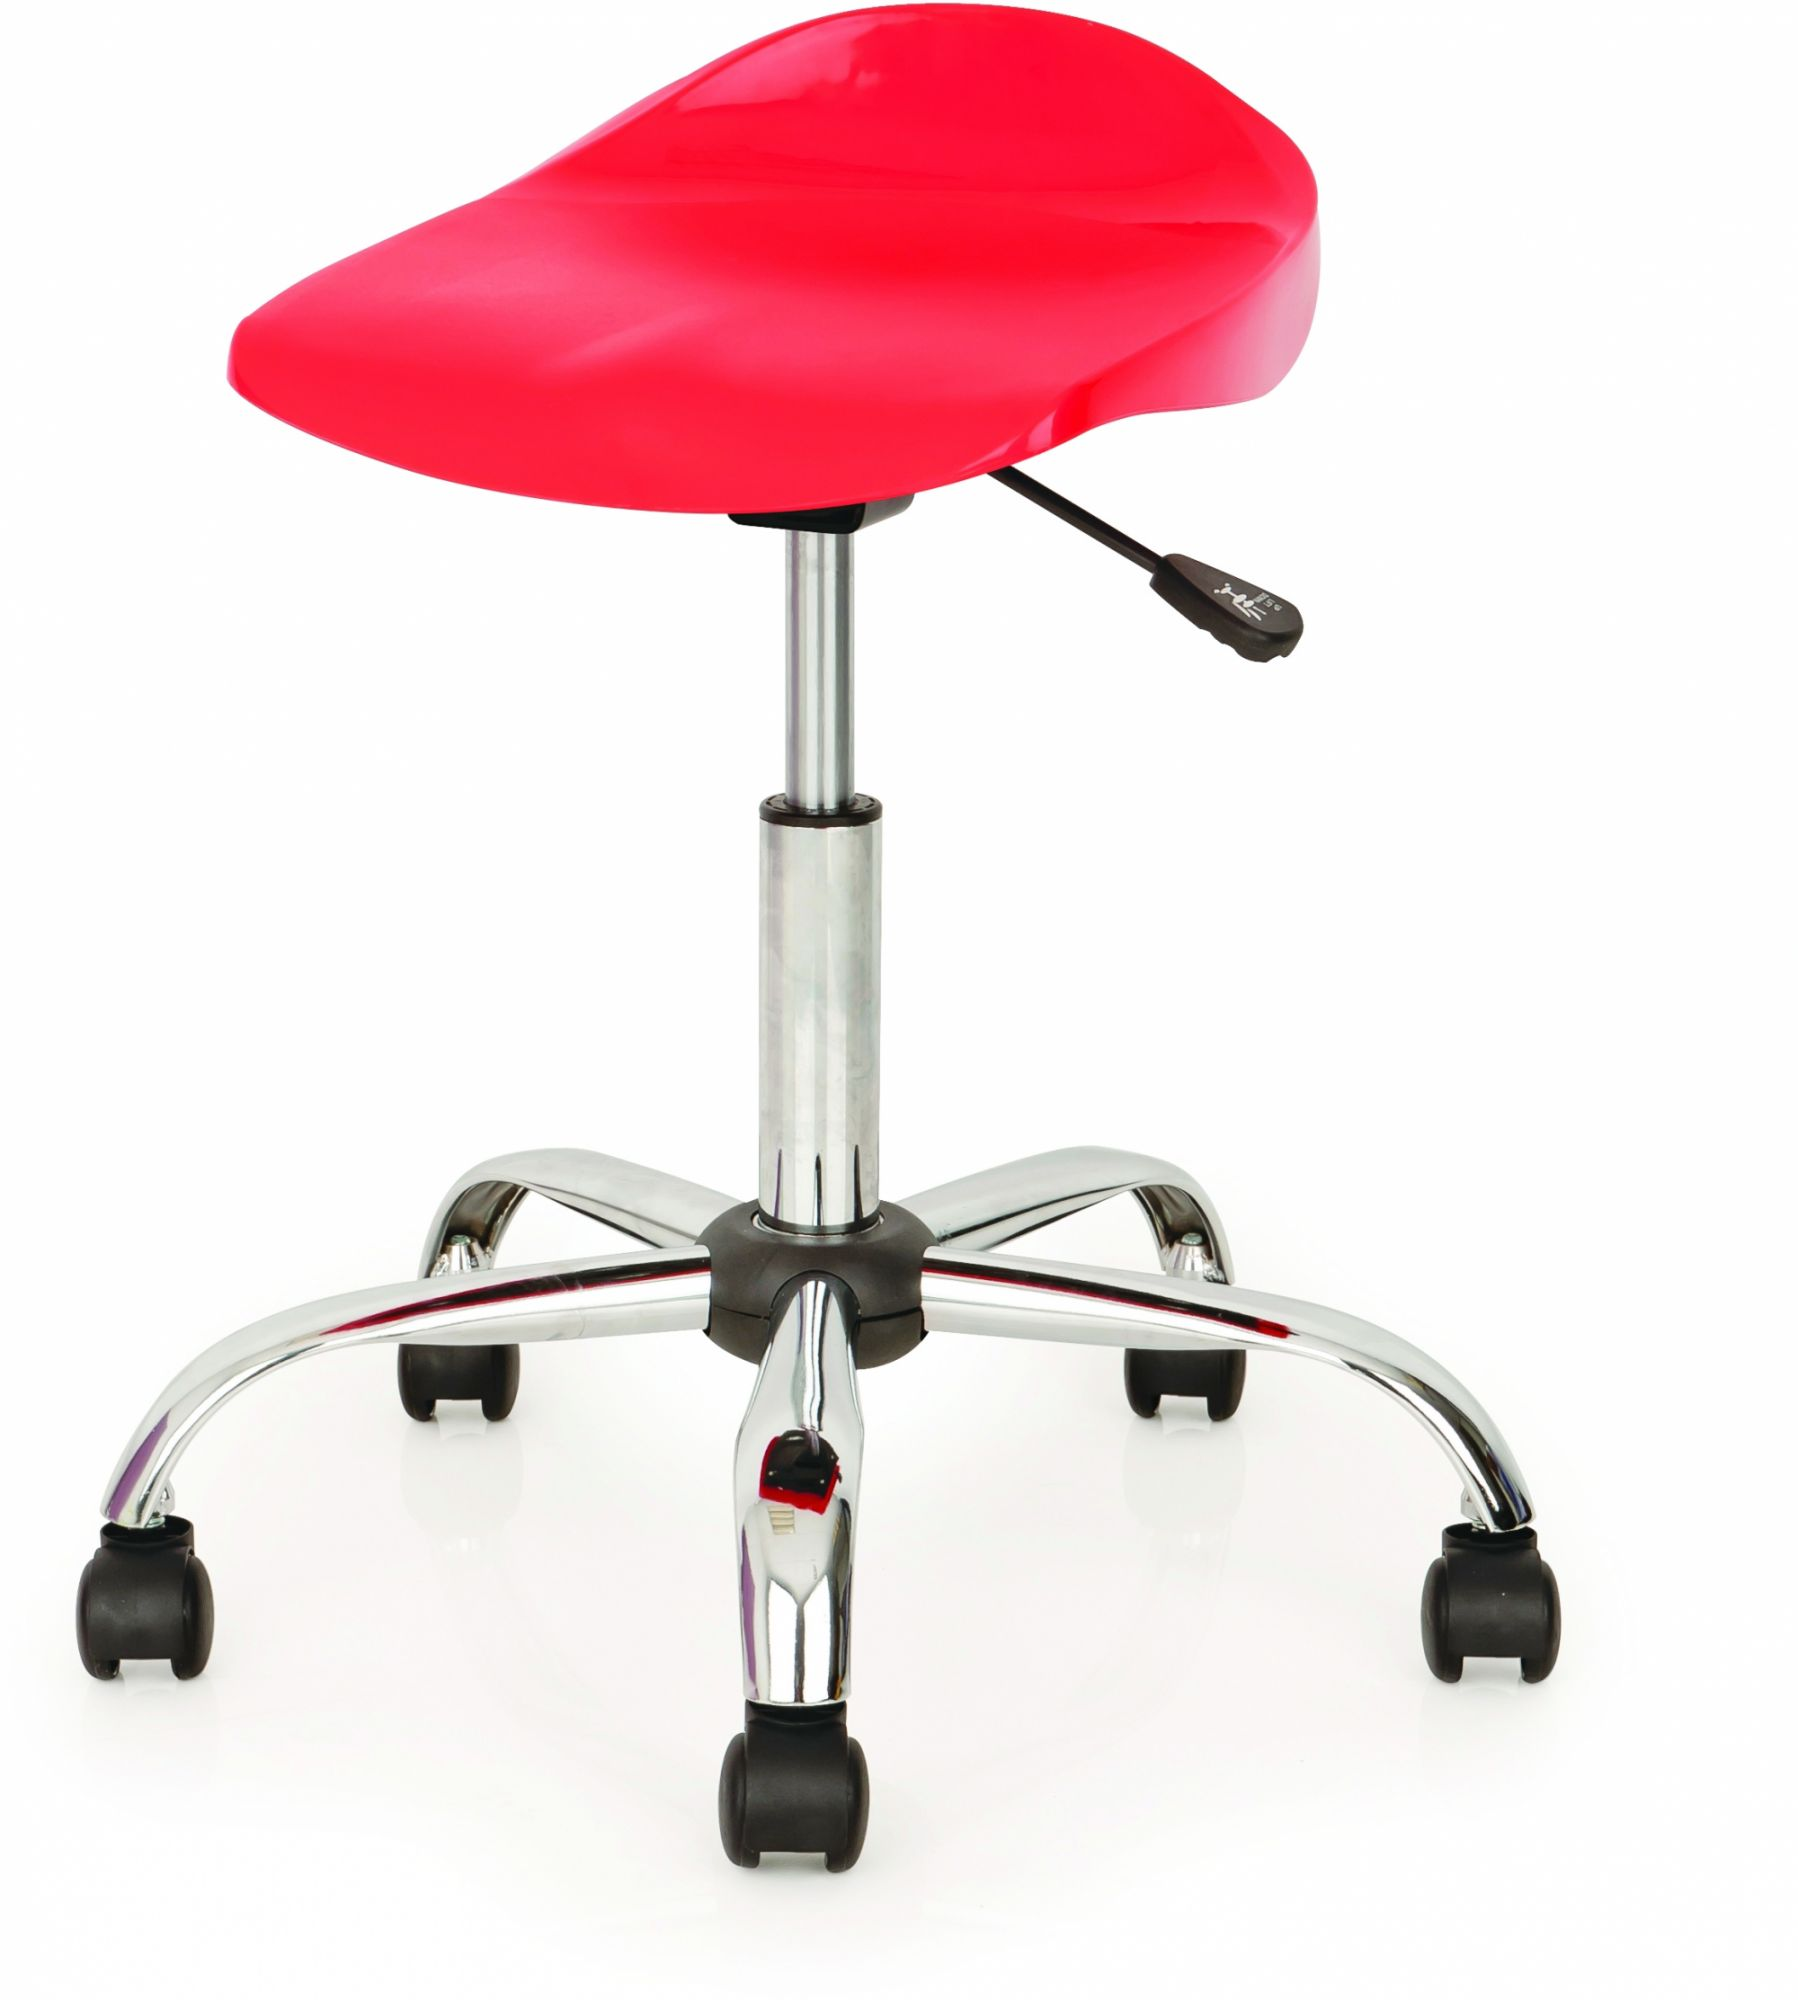 titan-T32-swivel-stool-red-2000x2000